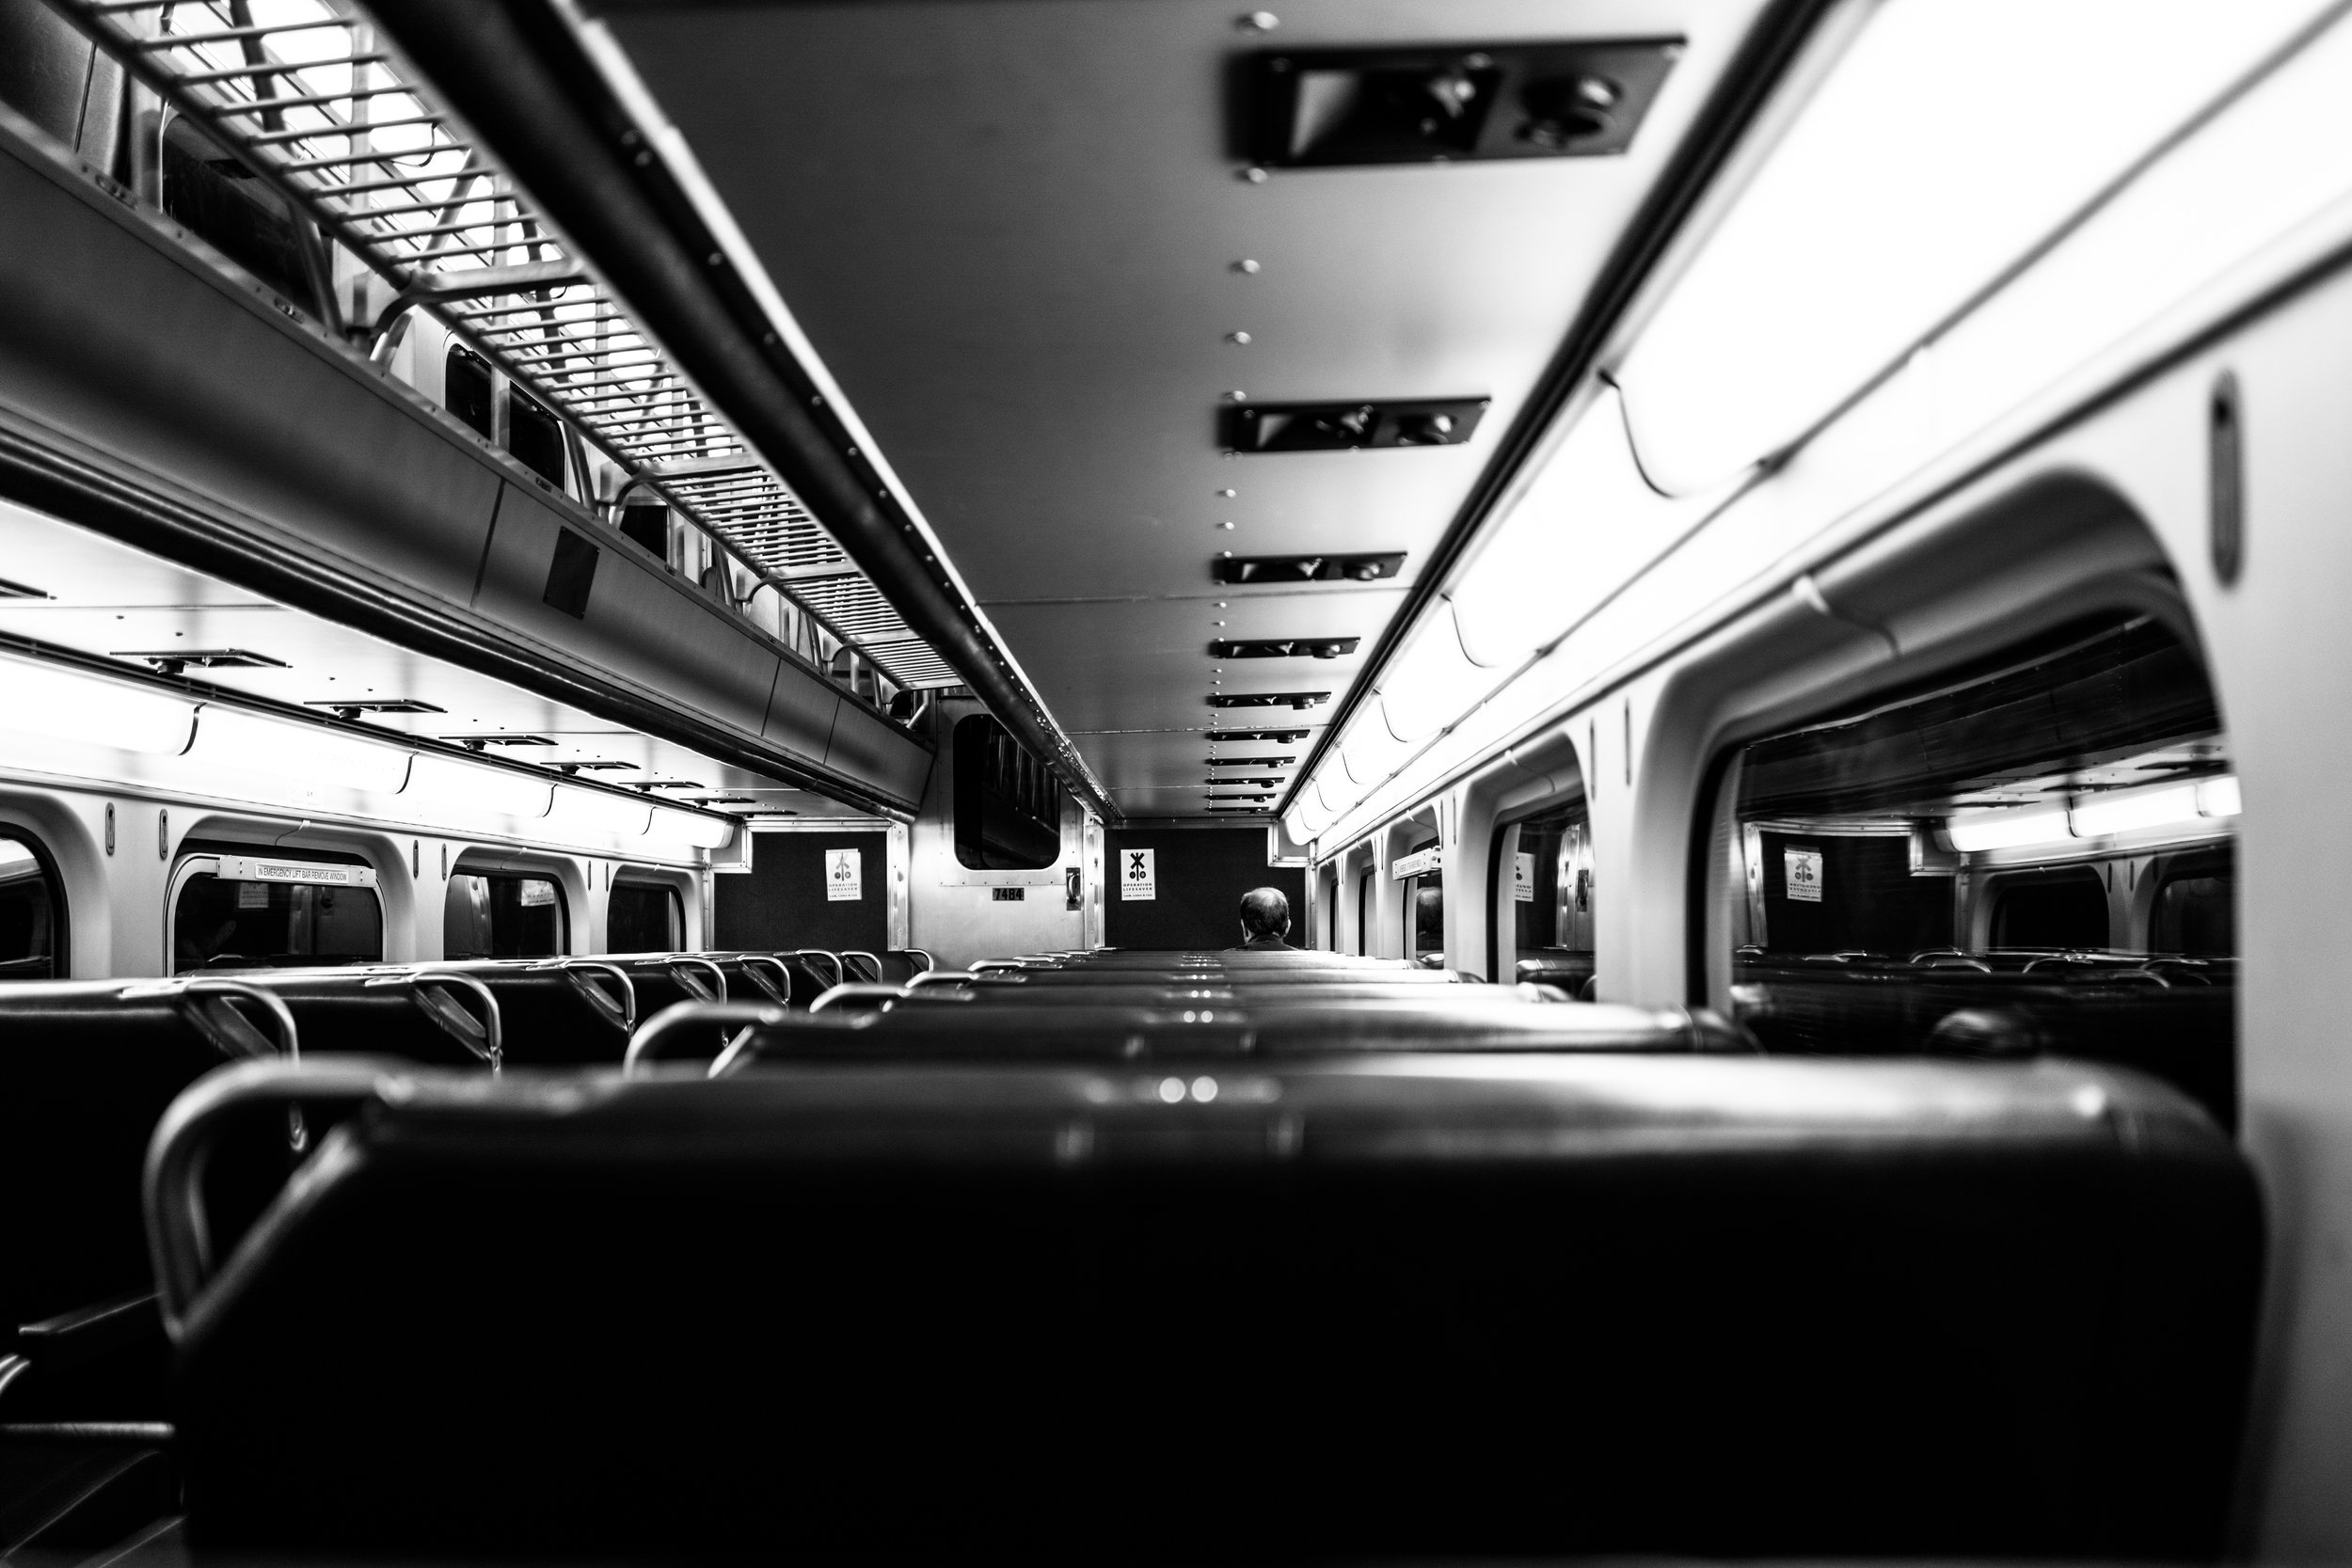 Train All to Himself